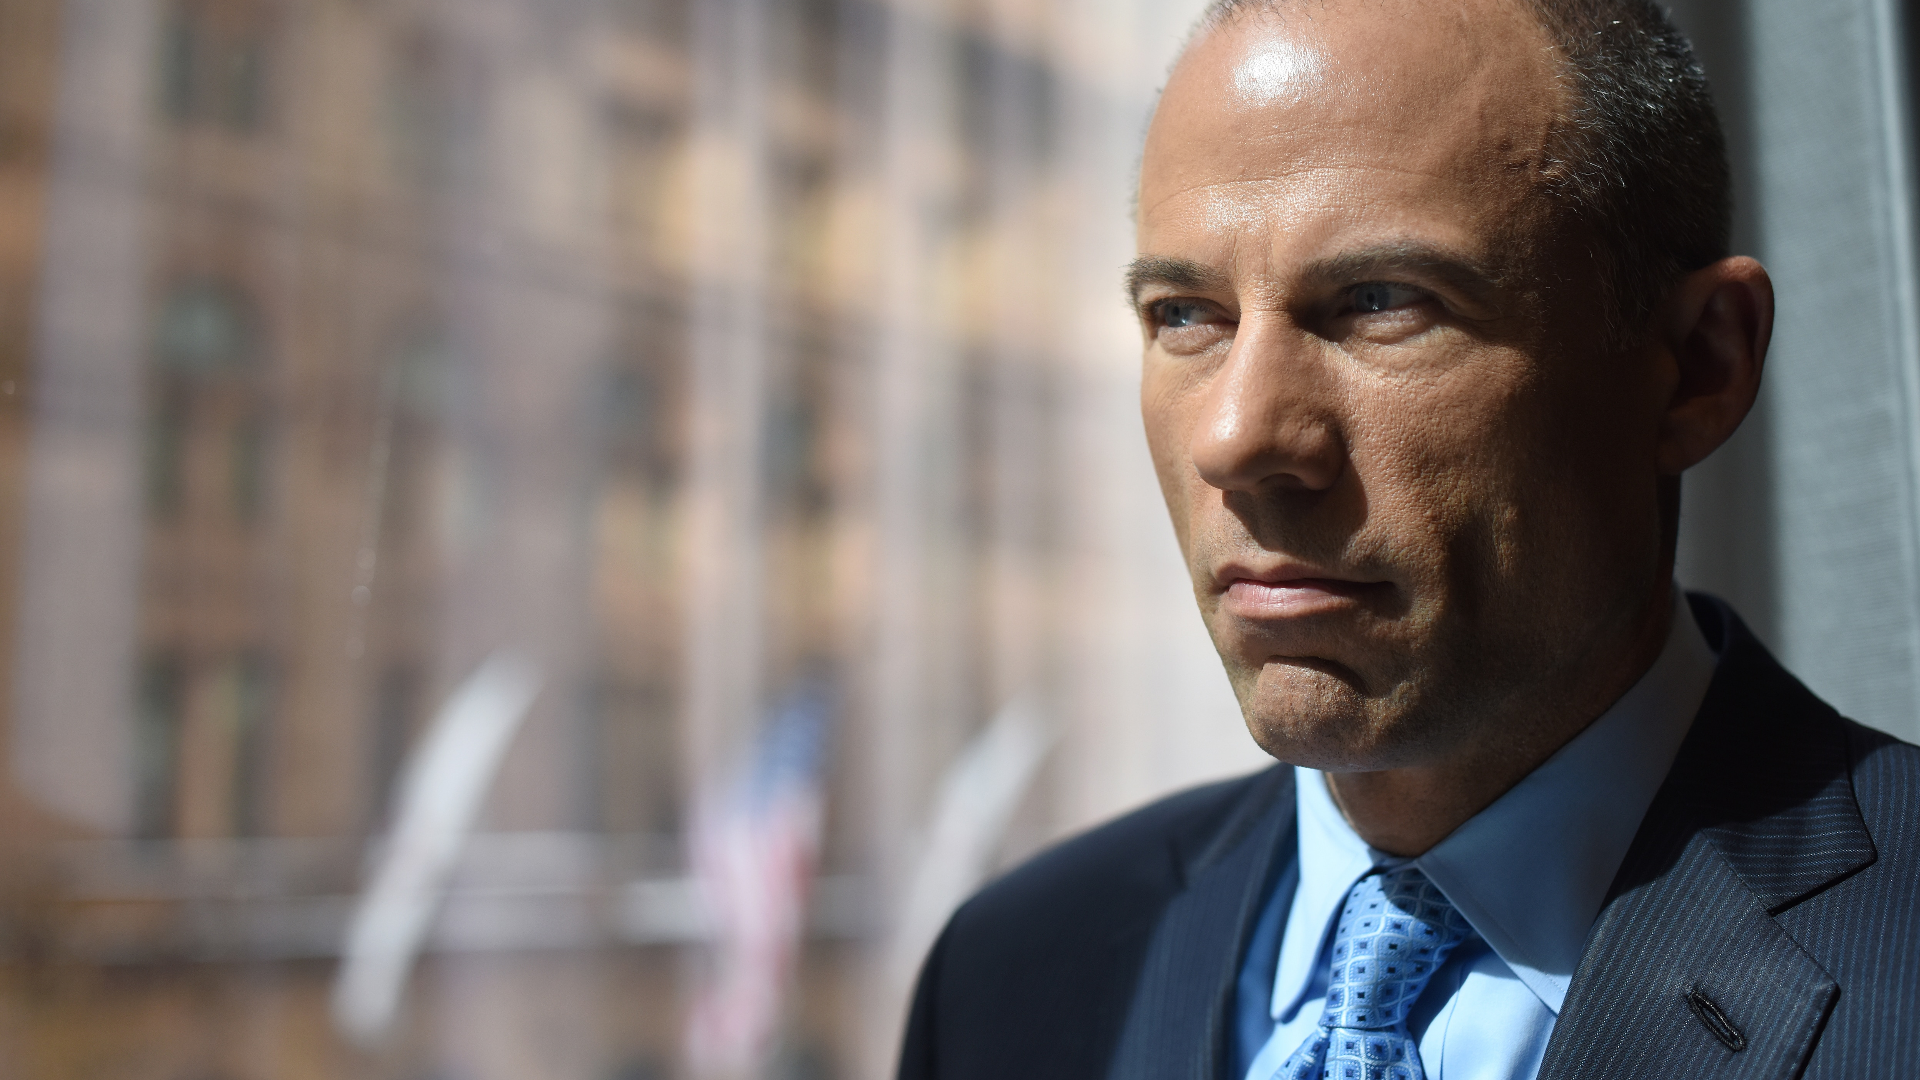 Michael Avenatti law firm evicted after not paying more than $213,000 in back rent